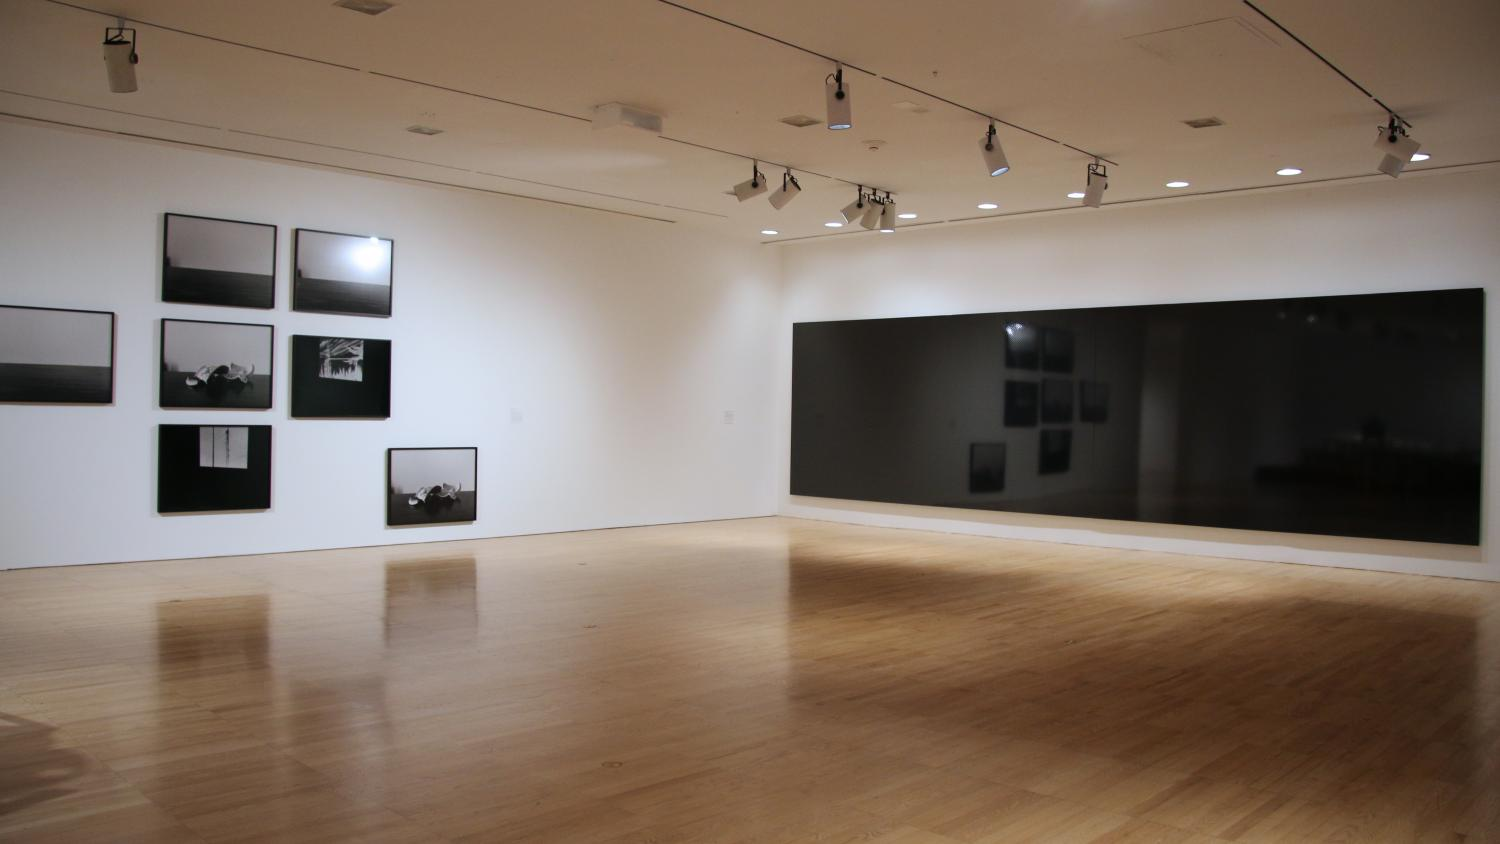 Time / Image, installation at Krannert Art Museum, 2016. Photo by Julia Nucci Kelly